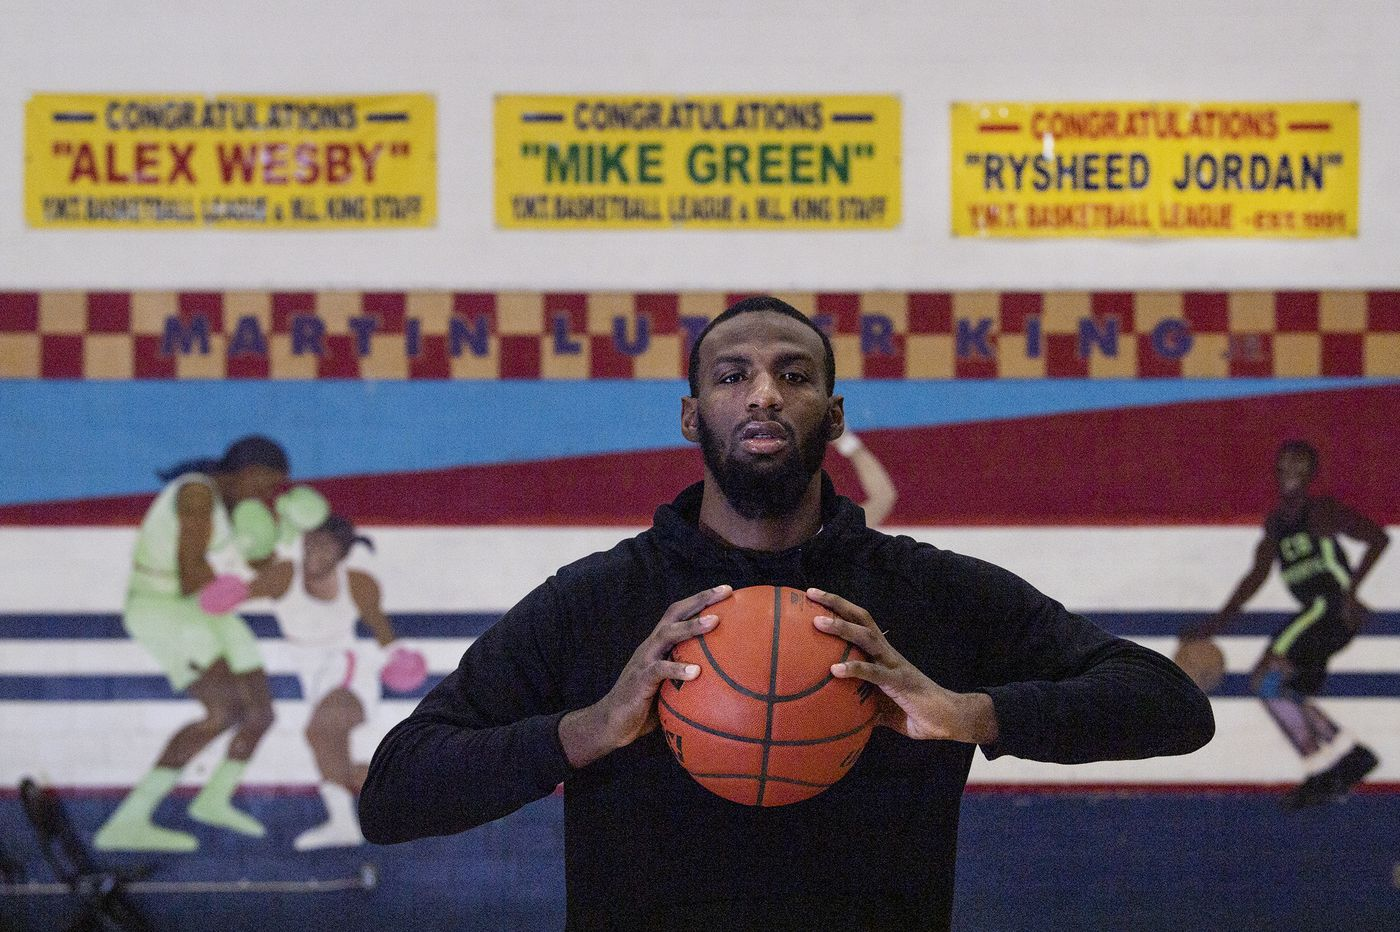 Rysheed Jordan, 'Prince of North Philly,' returns home looking to pick up where he left off